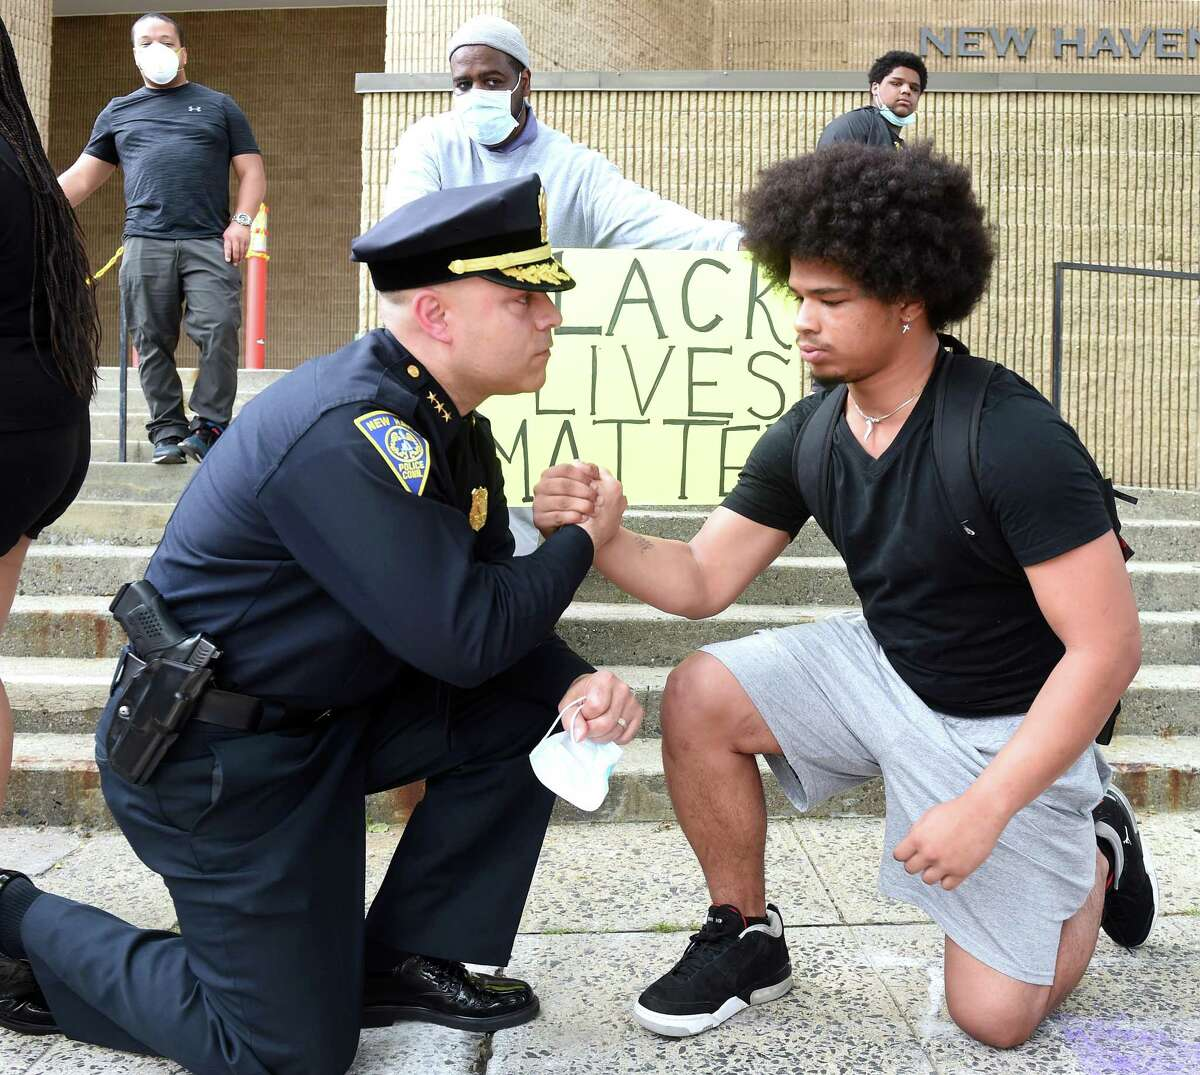 New Haven Police Chief Otoniel Reyes (left) takes a knee to the ground with Wilbur Cross junior Jabez Cubiz, 18, in front of the New Haven Police Department after the chief met with protesters on June 3 in the aftermath of the death of George Floyd at the hands of Minneapolis Police. Kenneth V Oliver, Jr, New Haven It is a sad state of affairs. It brought back memories of the racial tension I felt in high school...Being a 61 y/o African American I have seen countless racial difficulties. And racial profiling. I believe in the power of Peaceful Protest. I am appalled at the looters. And for the respectful Police I feel for them. The New Haven, CT Chief of Police is a personal friend I feel for him right now.